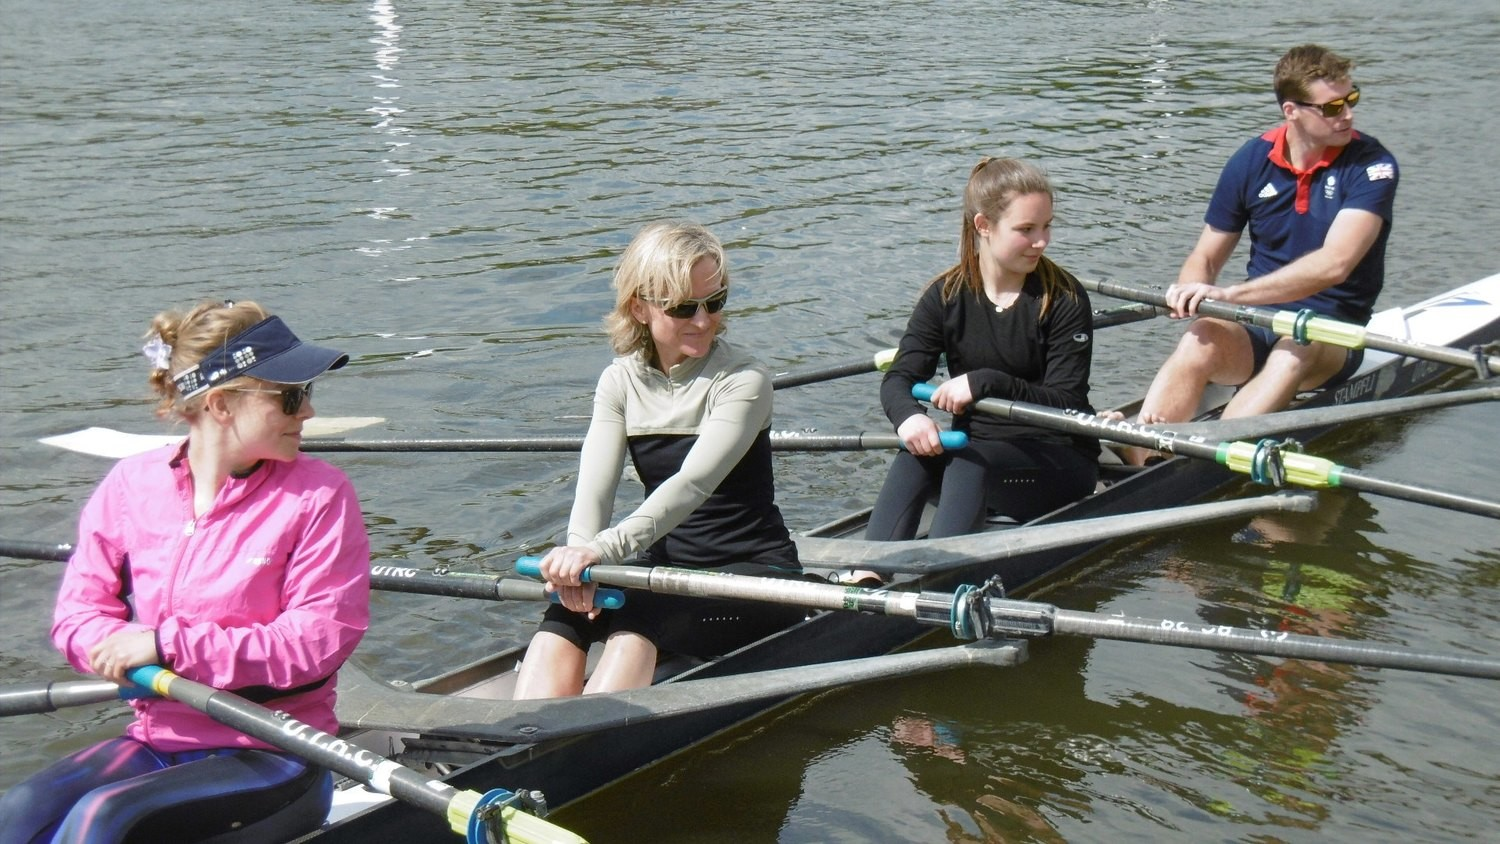 DEPOSIT: EXCLUSIVE VIP ROWING DAY HOSTED BY A GB GOLD MEDALIST - Three / Six People